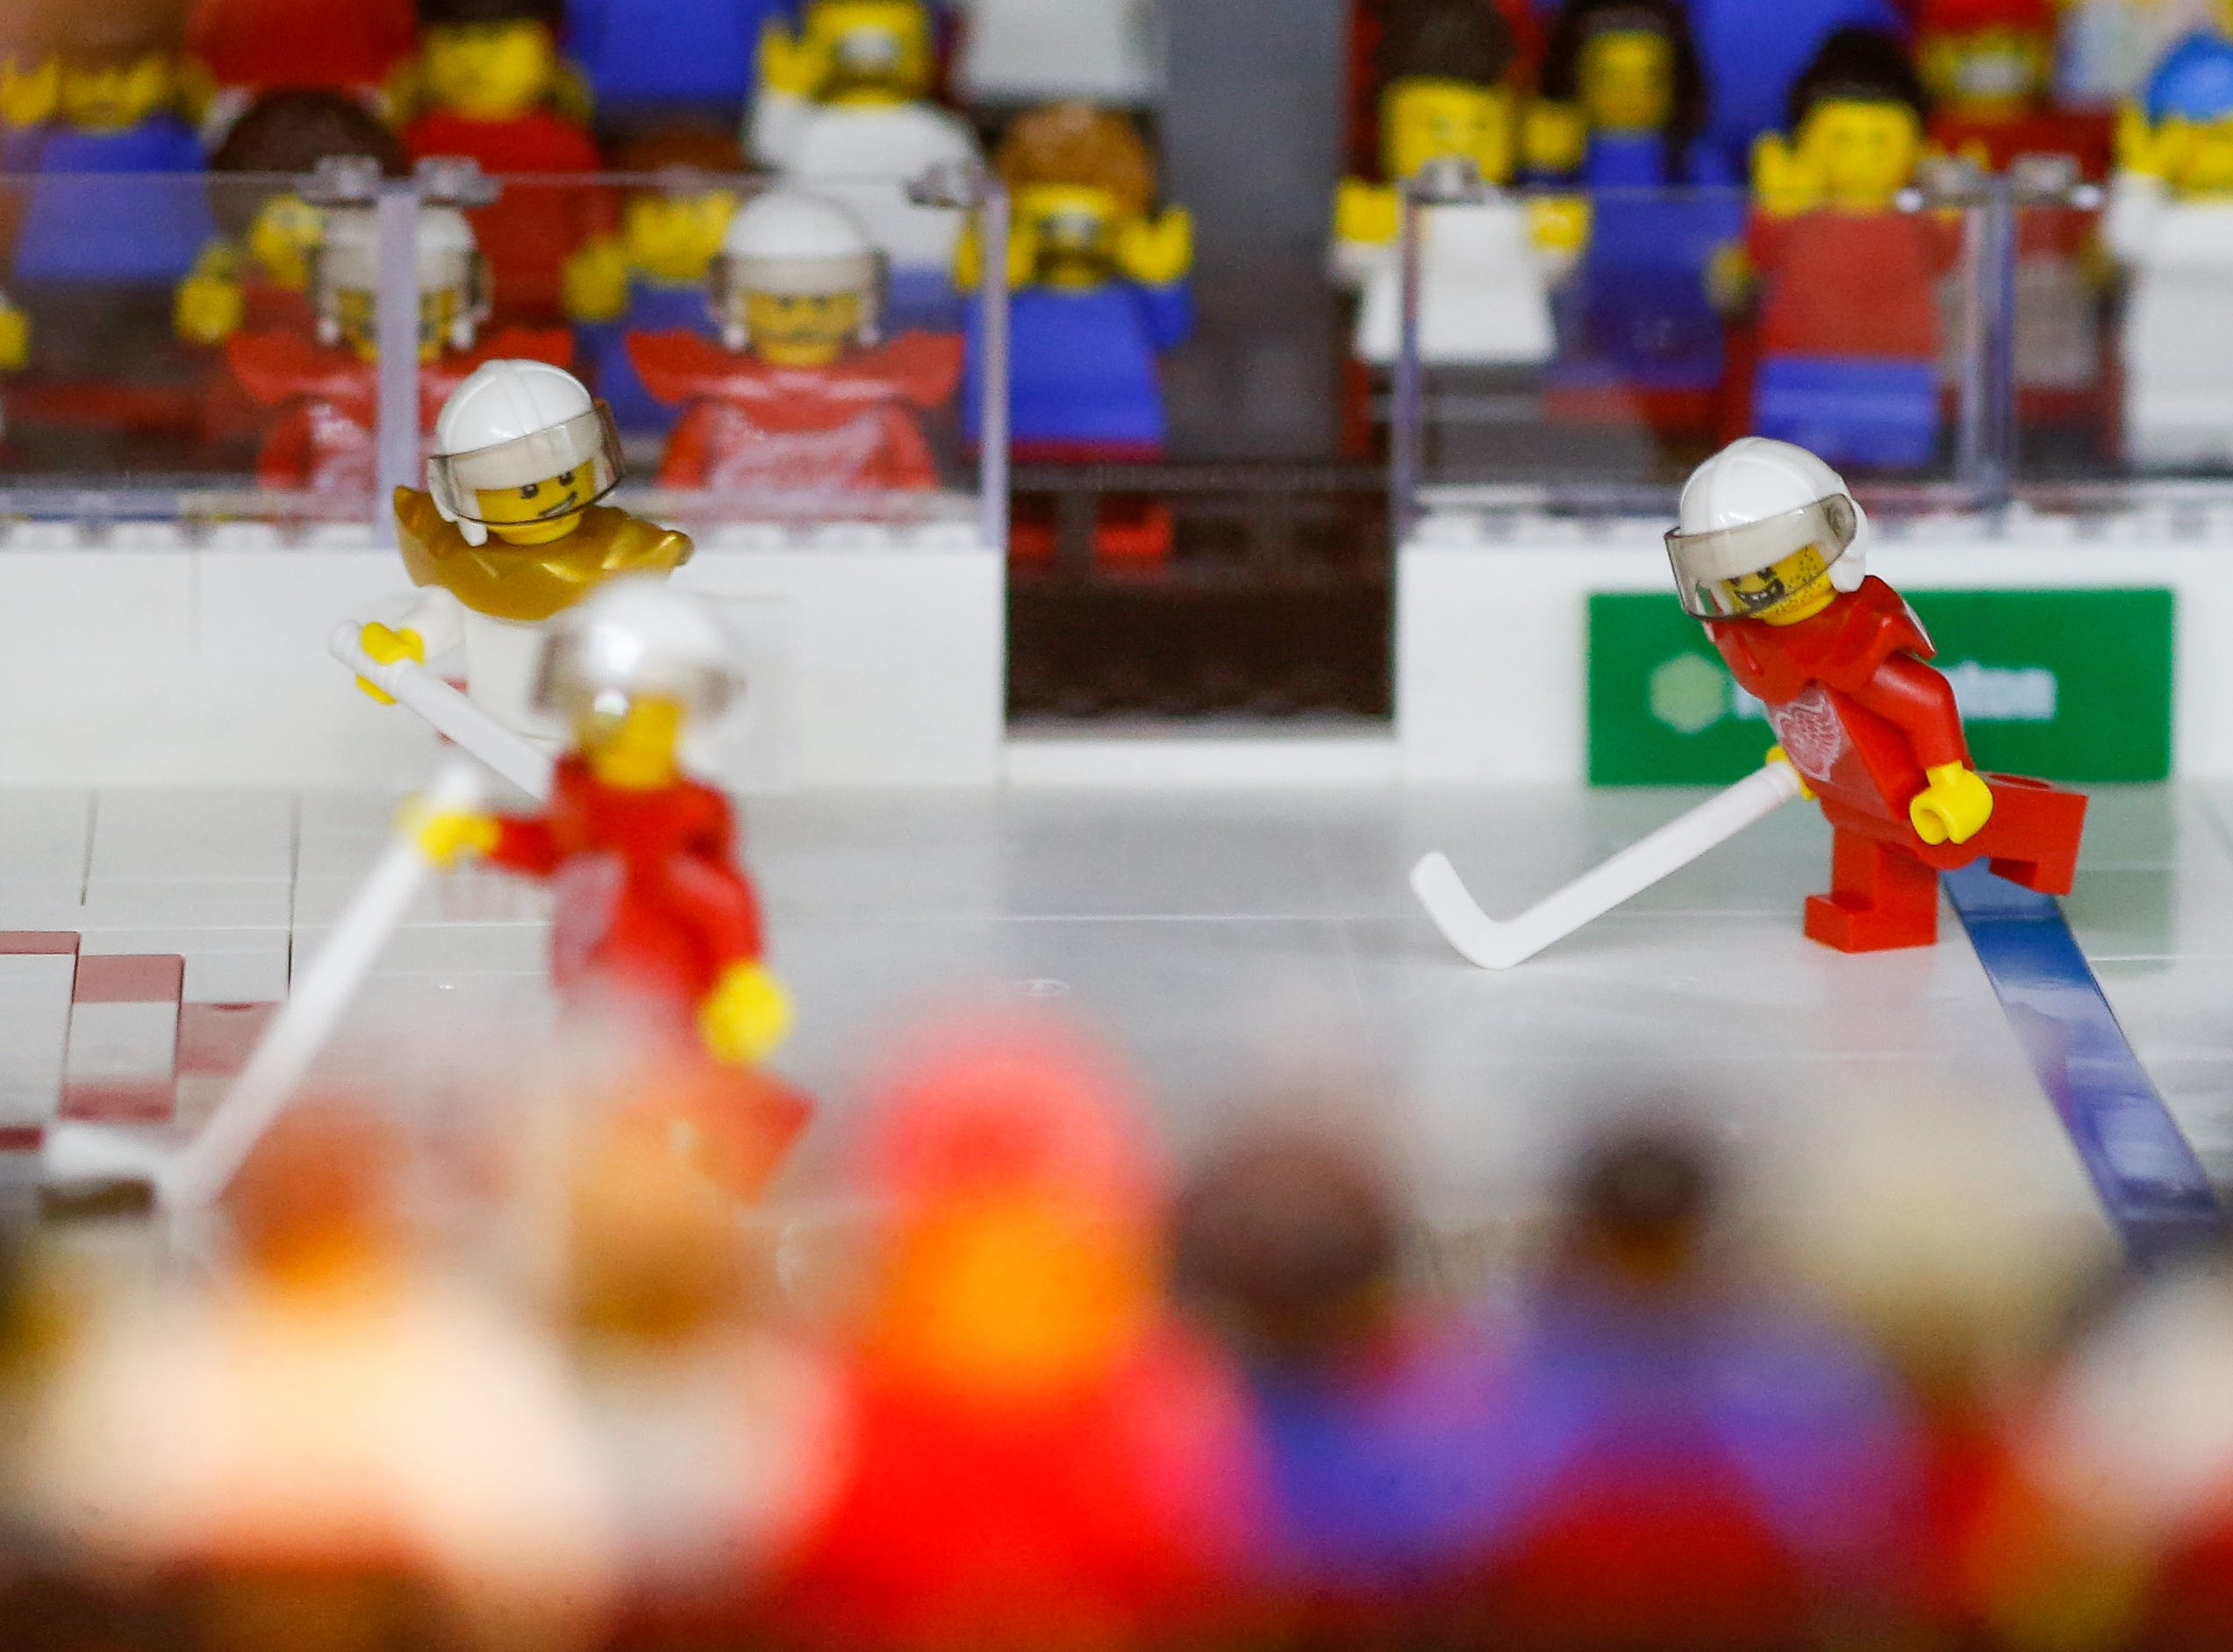 More action on the ice at LEGO LCA.